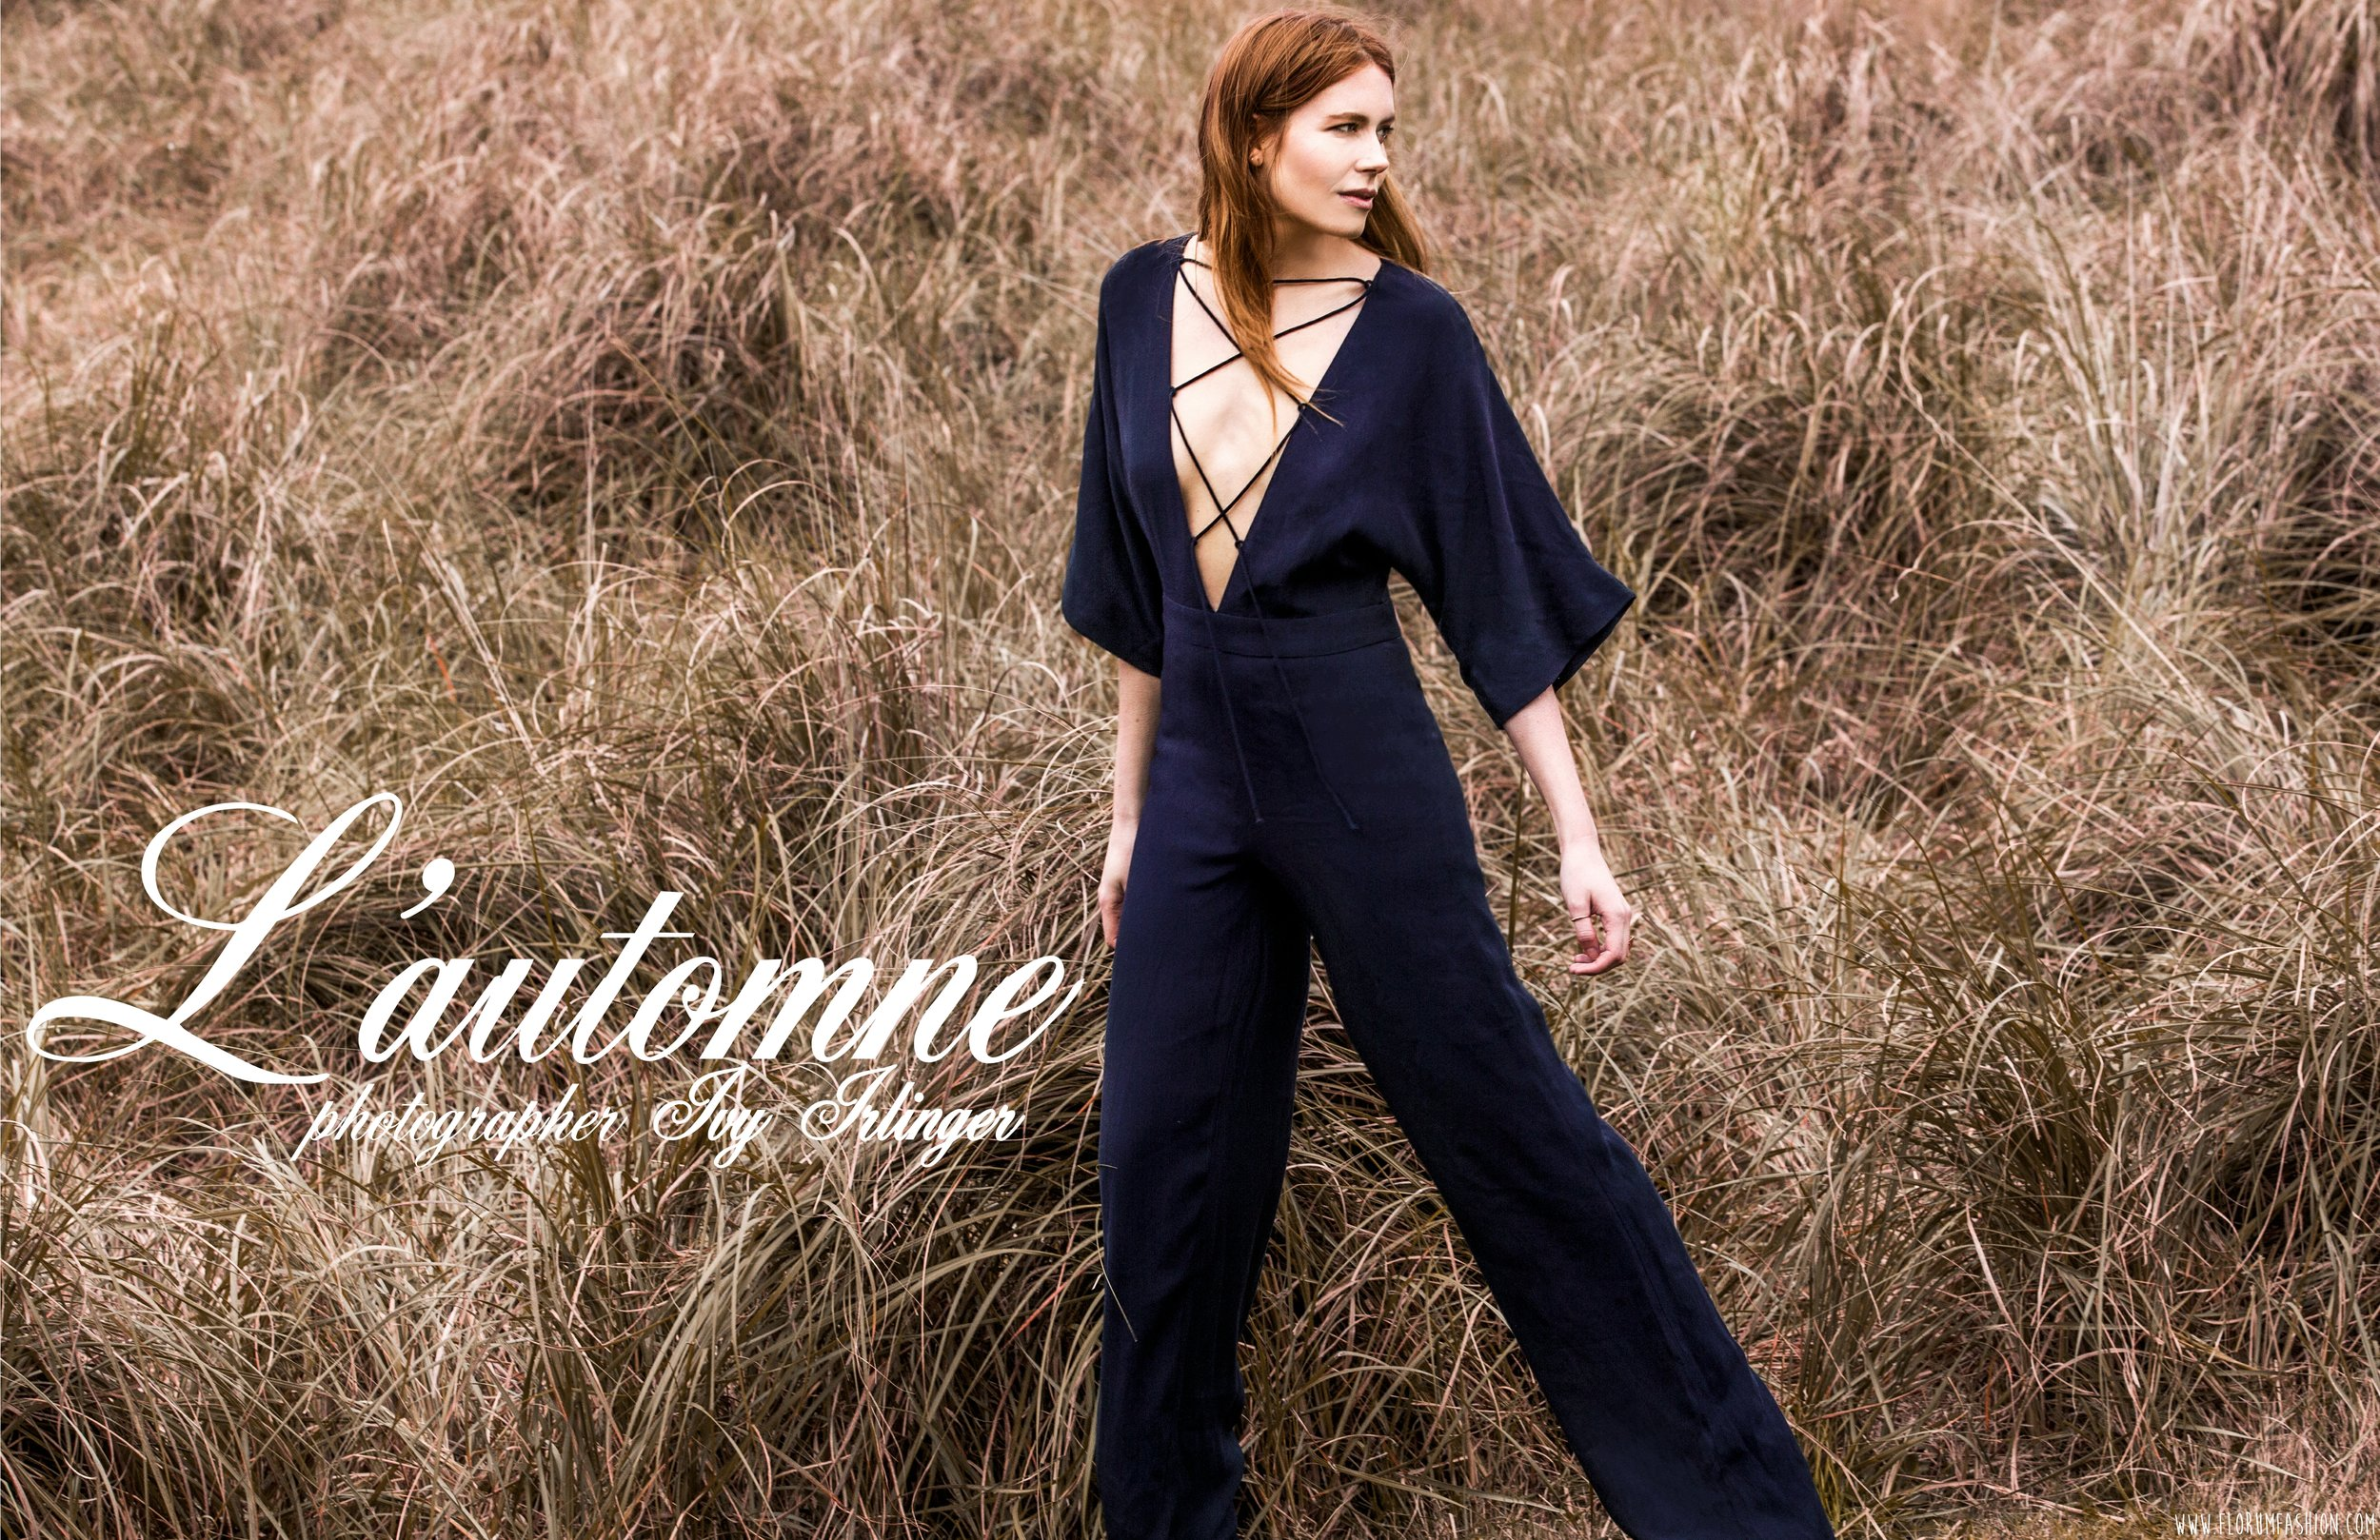 Ivy Irlinger - Florum Fashion Magazine - Autumn Days - l automne - slow fashion movement - autunno - green fashion - sustainable